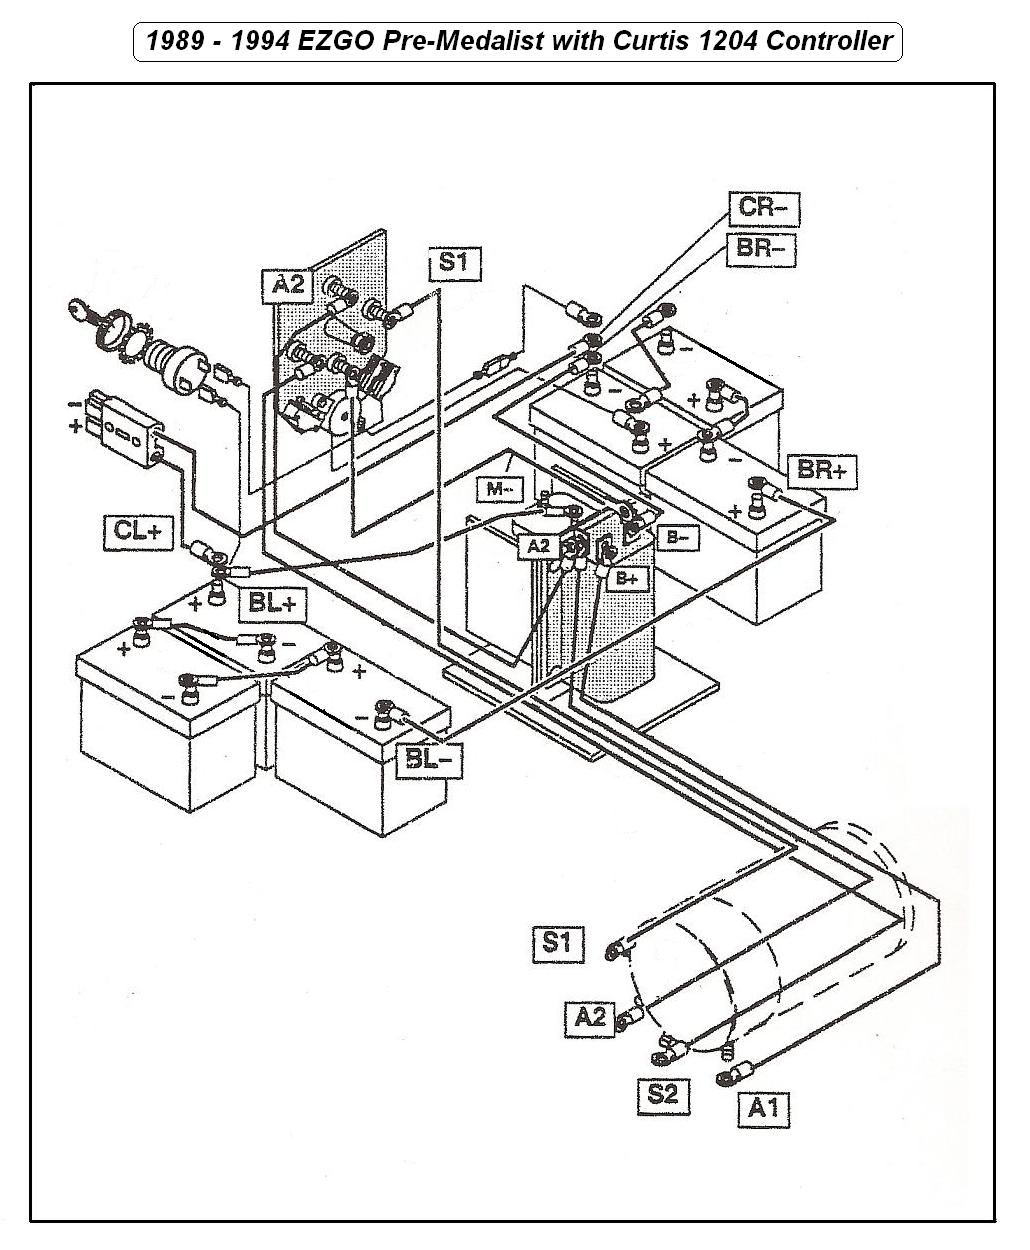 2000 Dodge Dakota Ignition Wiring Diagram 1989